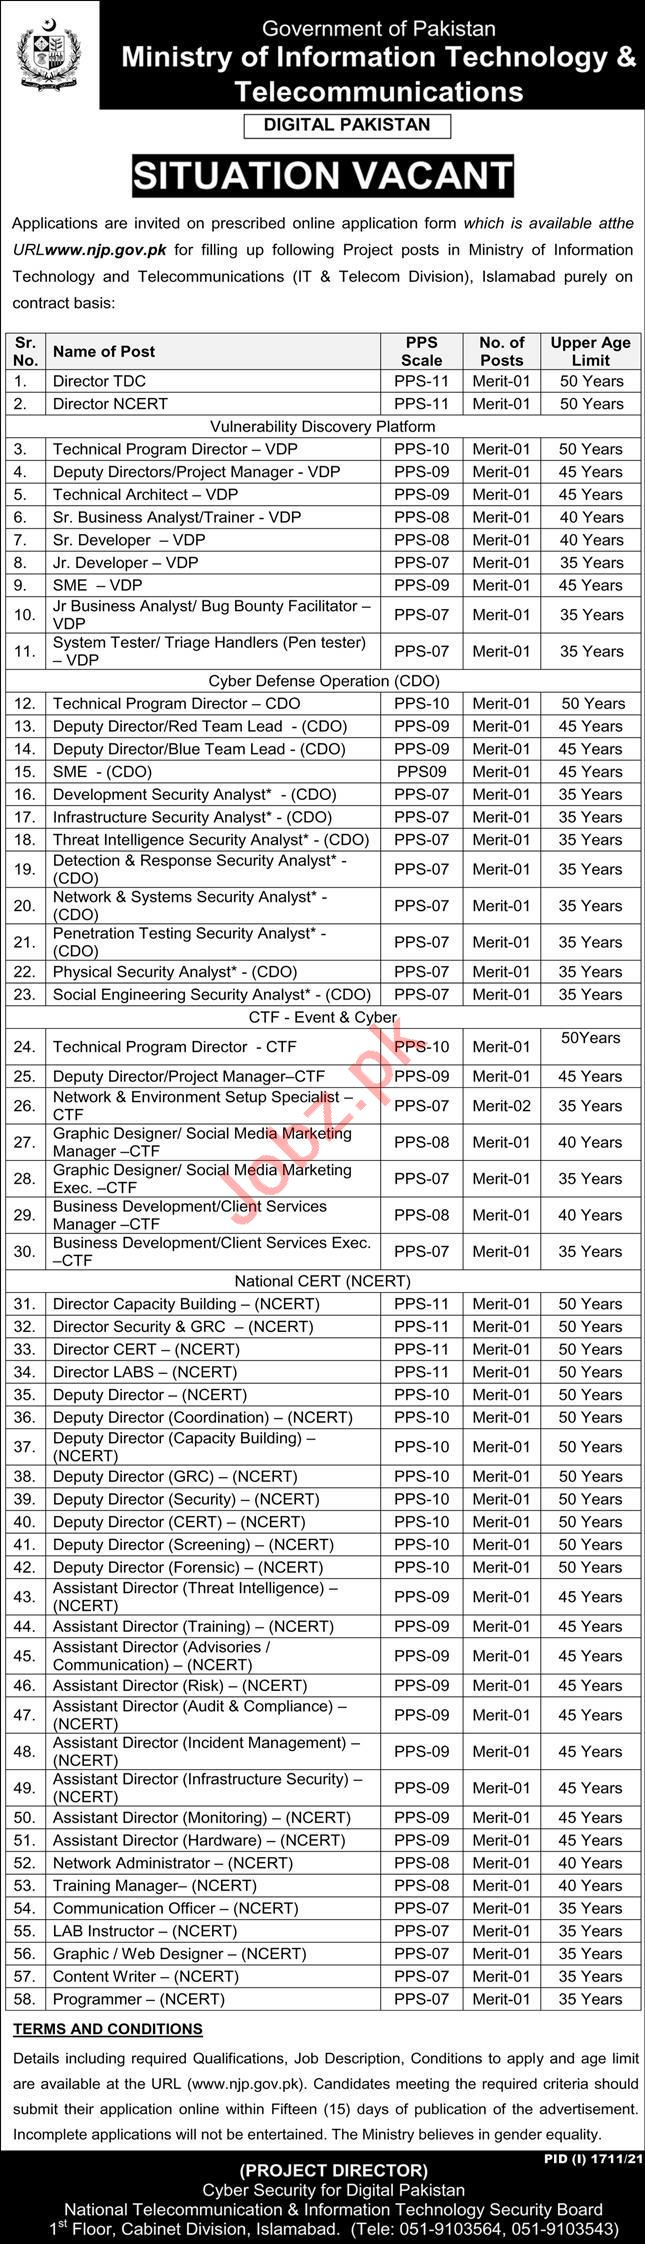 Ministry of Information Technology & Telecommunication Jobs